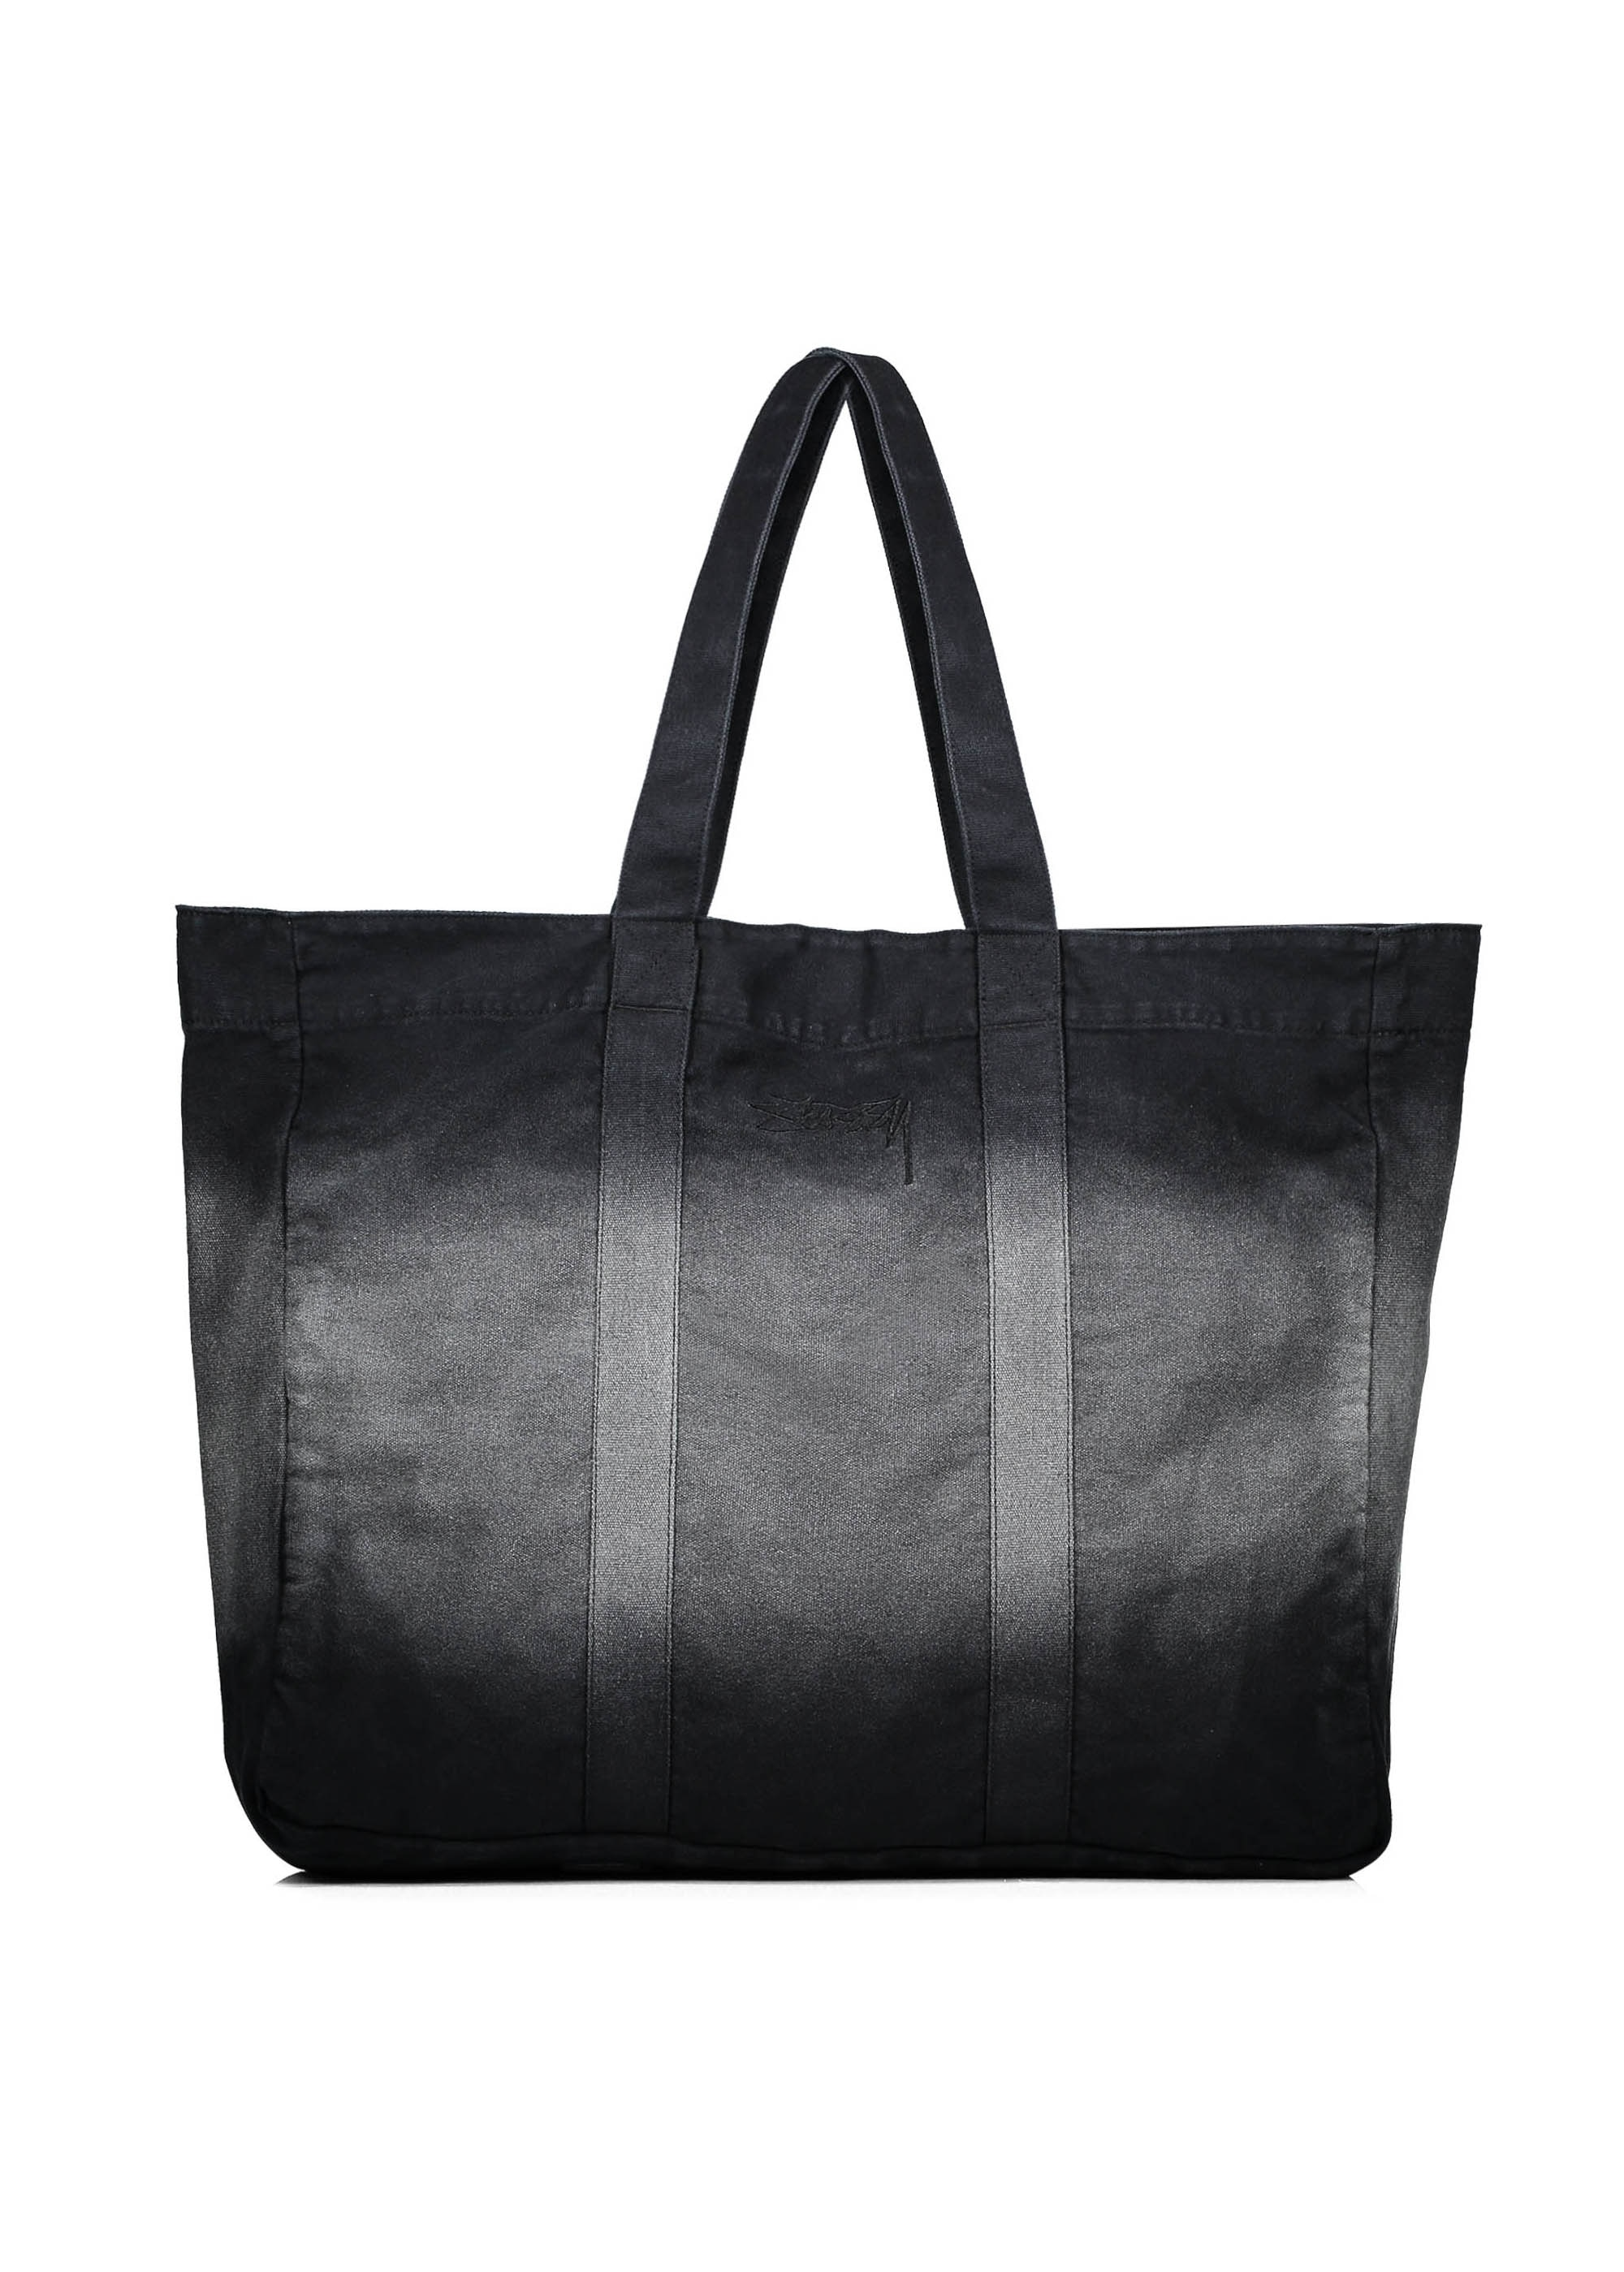 a60abf85f Stussy Bleach Stripe Beach Tote - Black - Bags from Triads UK